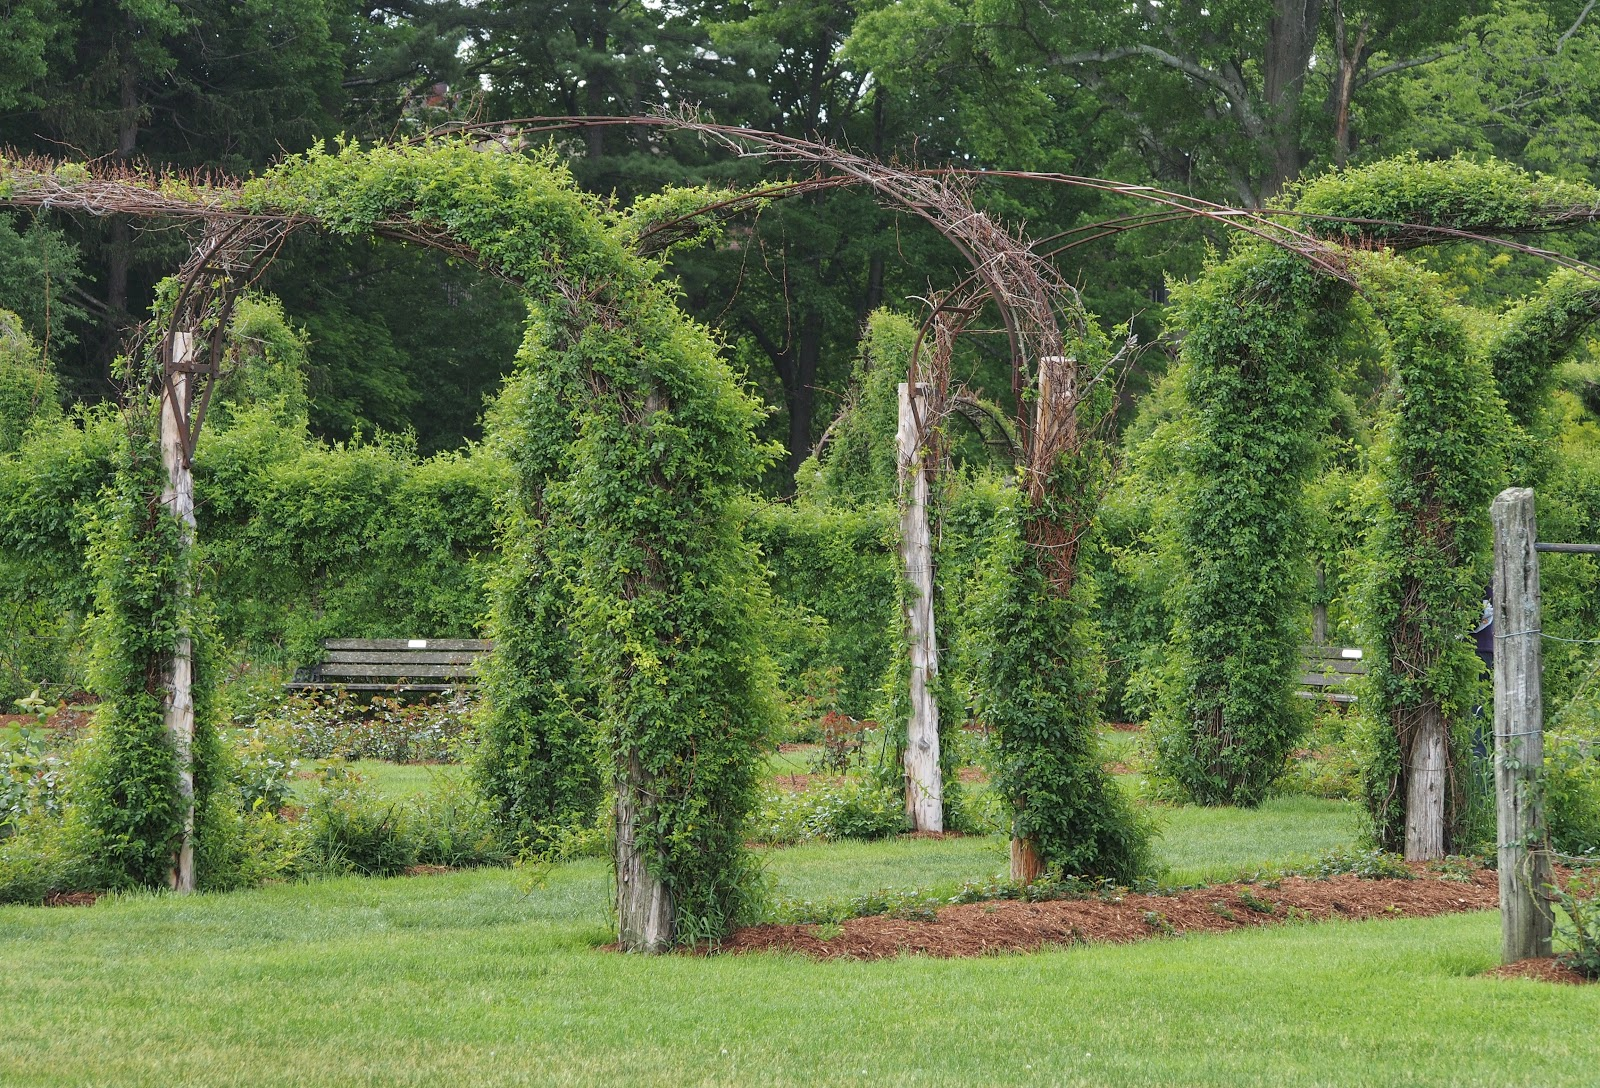 Rose Garden Arches, Elizabeth Park, Hartford, CT 2014 #rosegarden